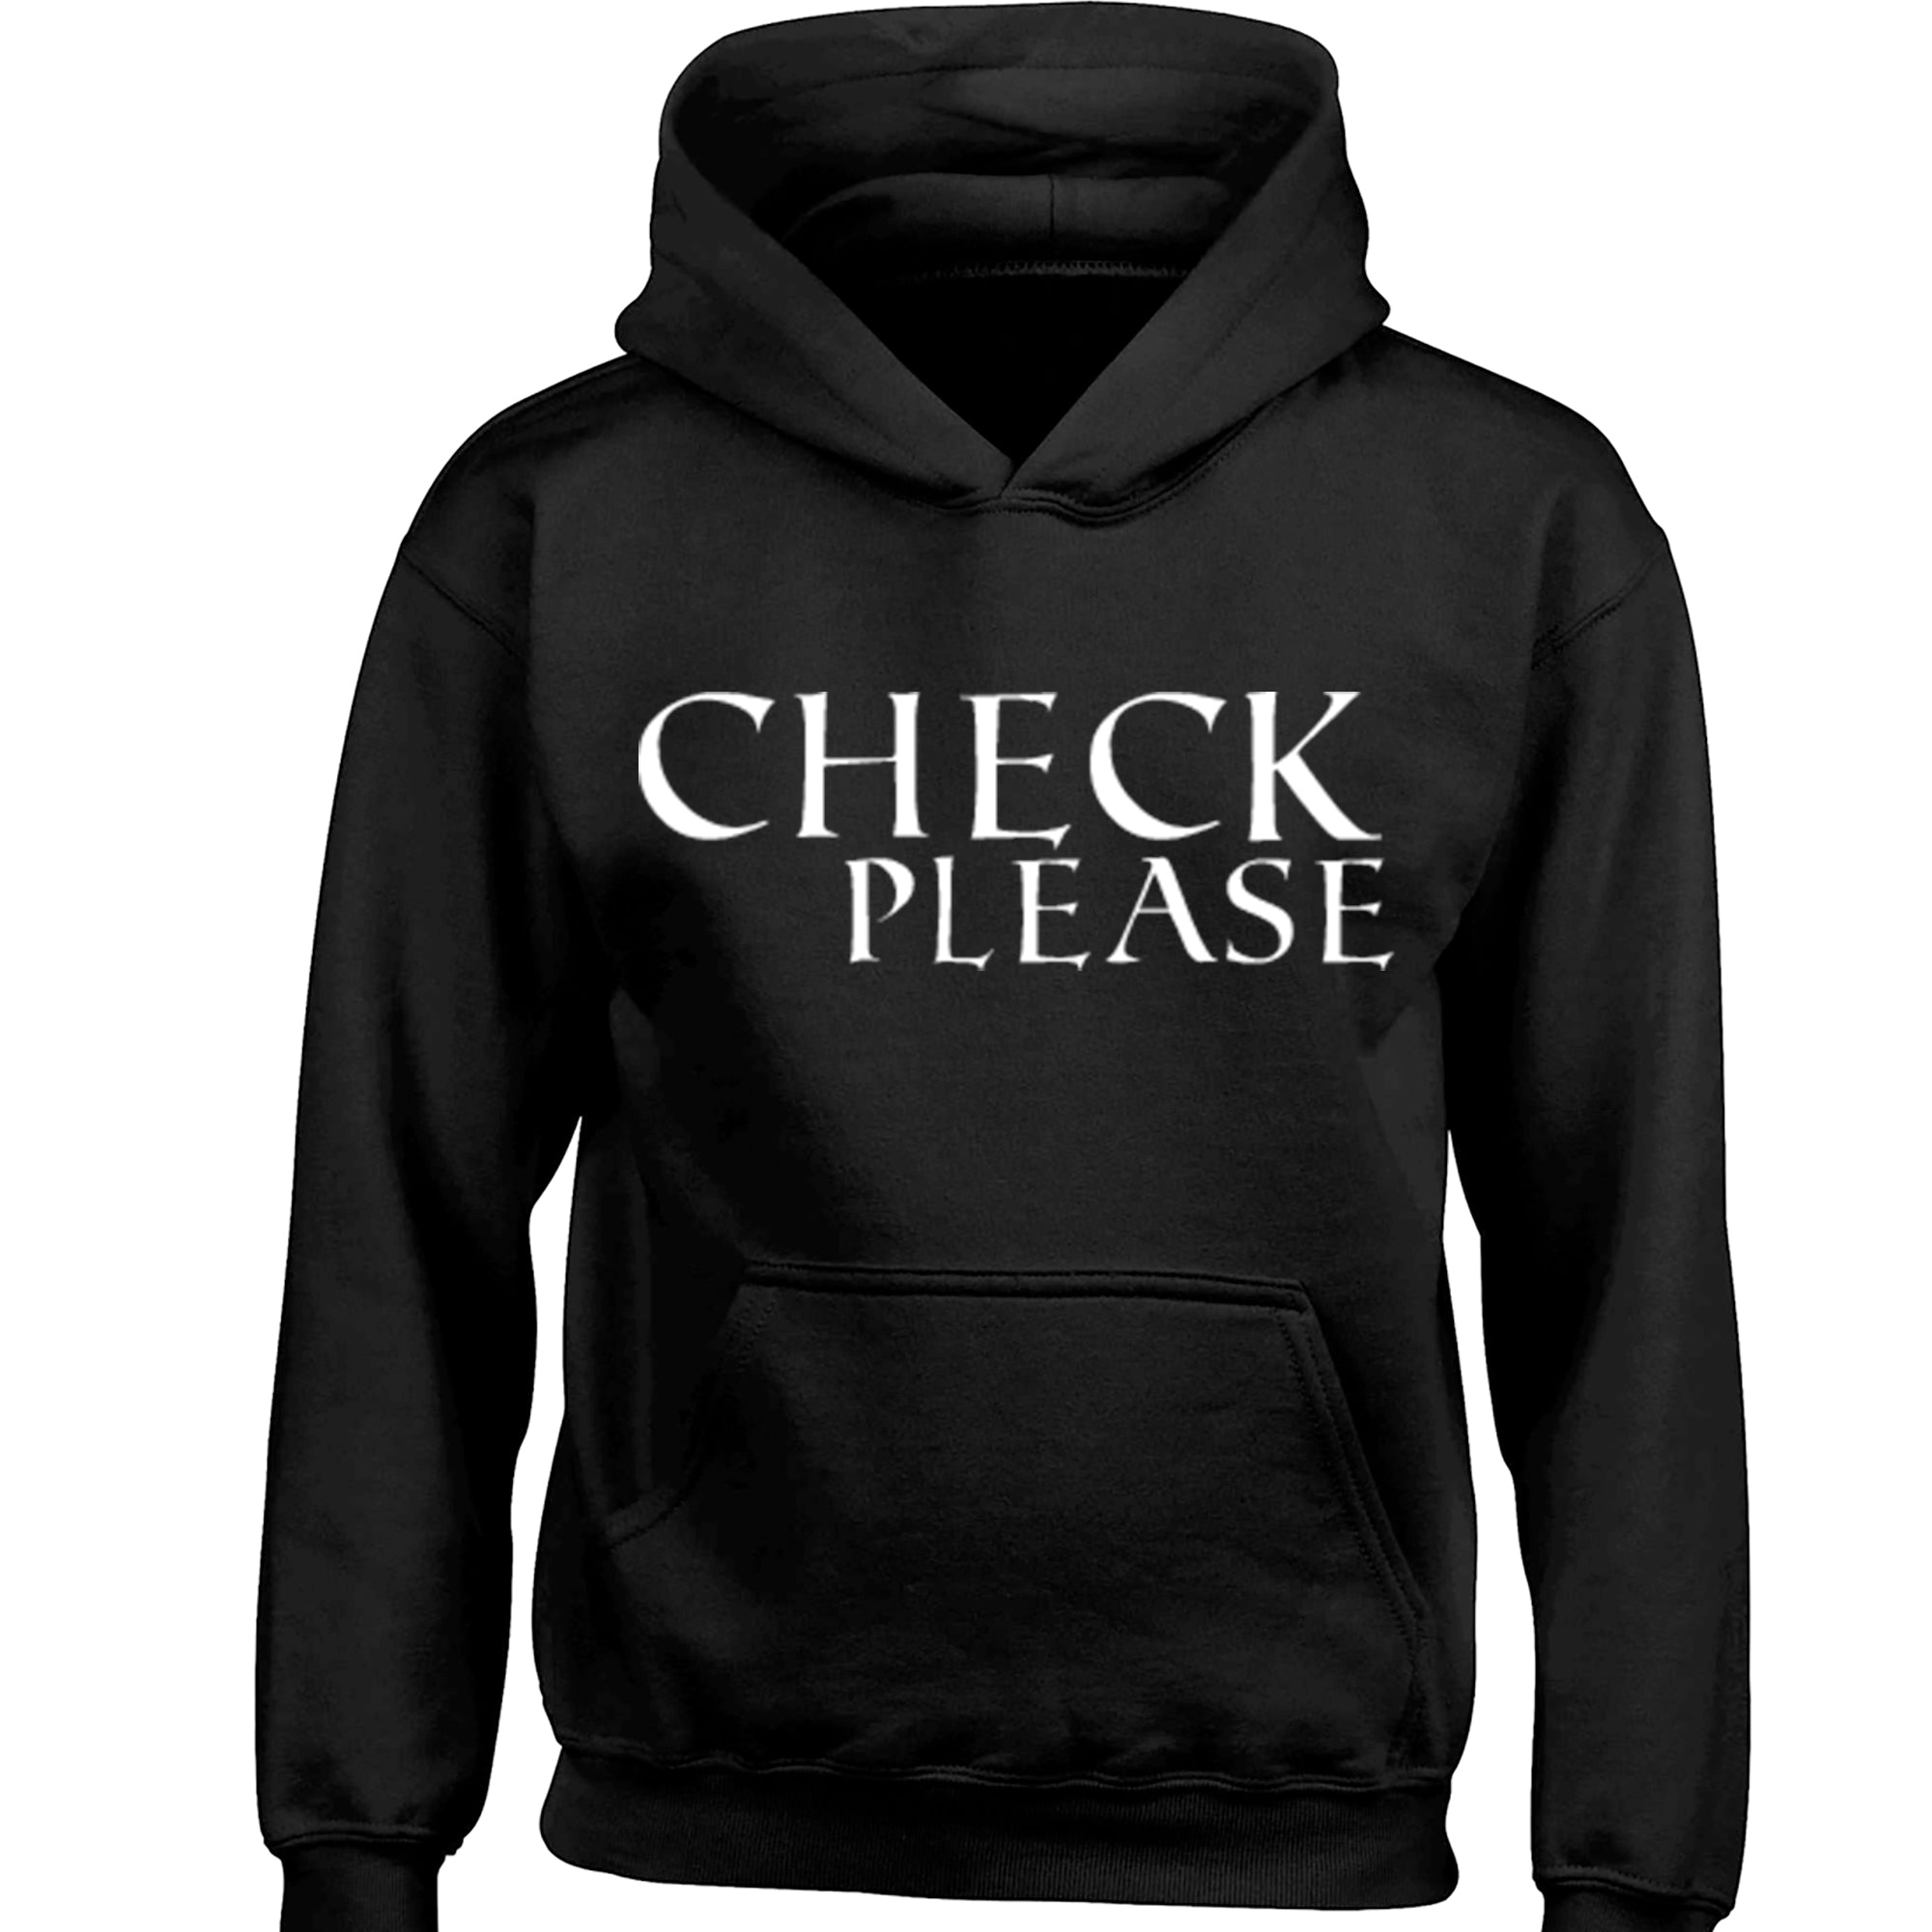 Check Please Childrens Ages 3/4-12/14 Unisex Hoodie S0318 - Illustrated Identity Ltd.